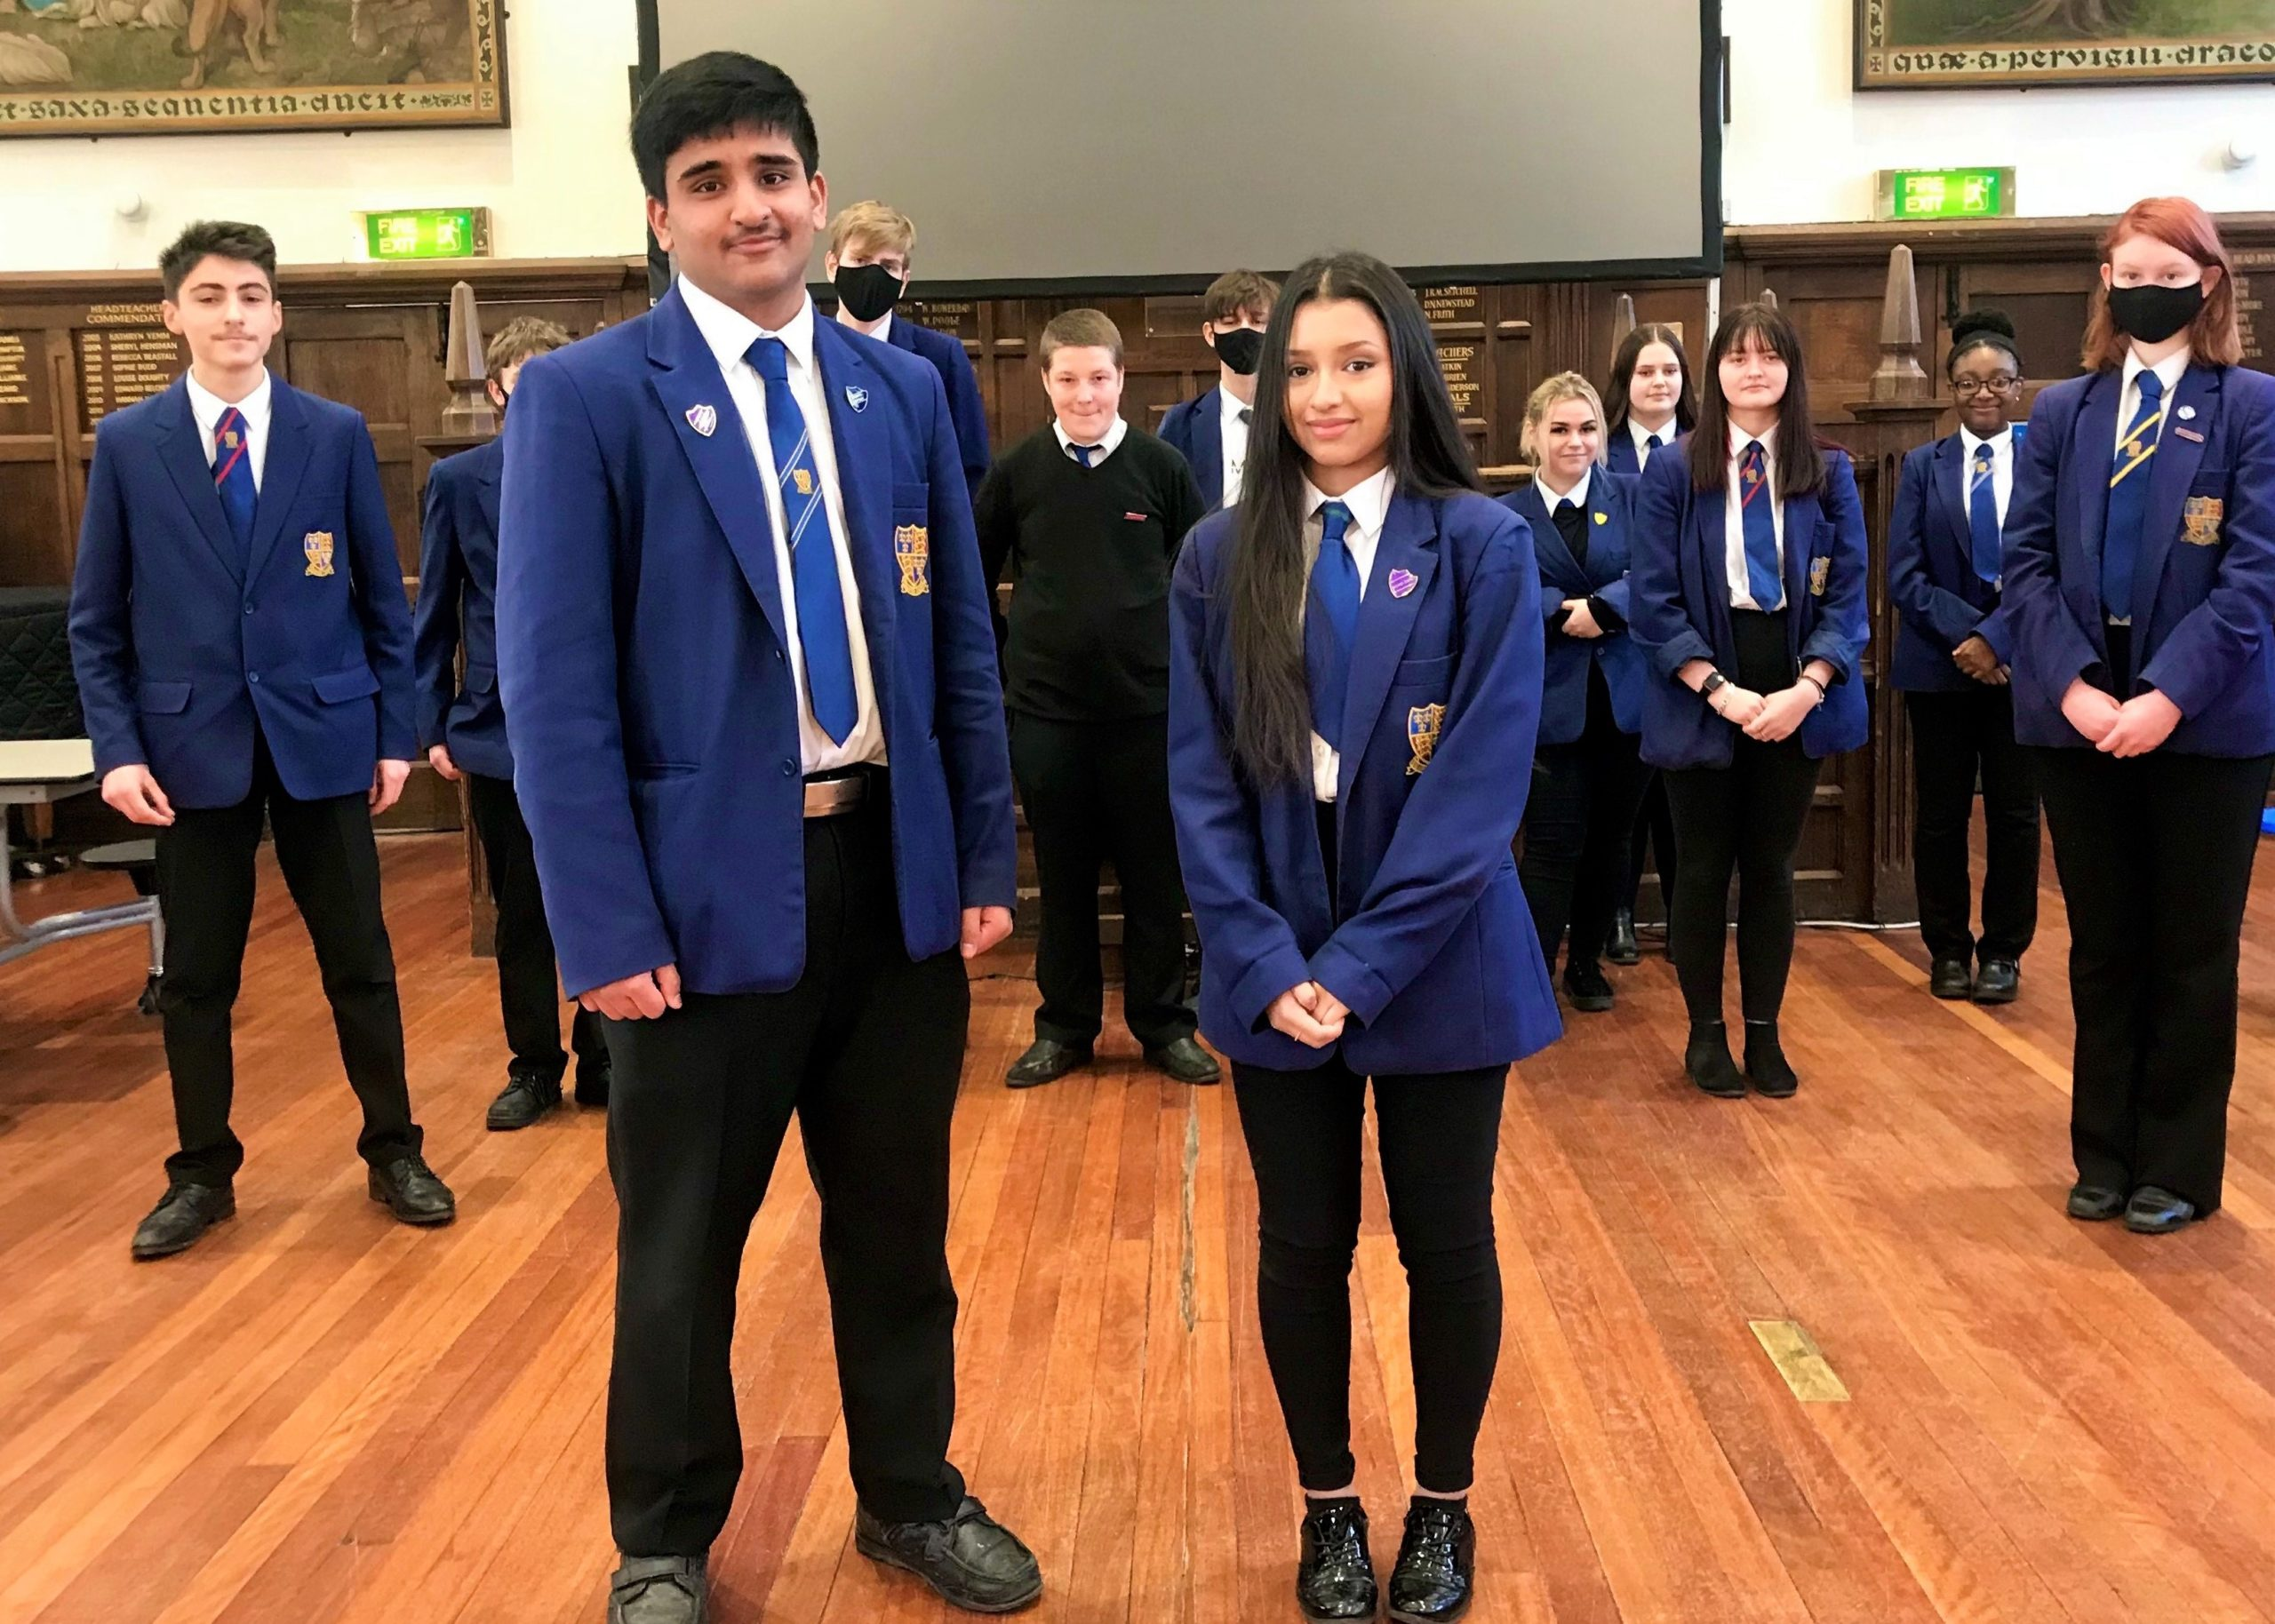 New head boy and head girl elected